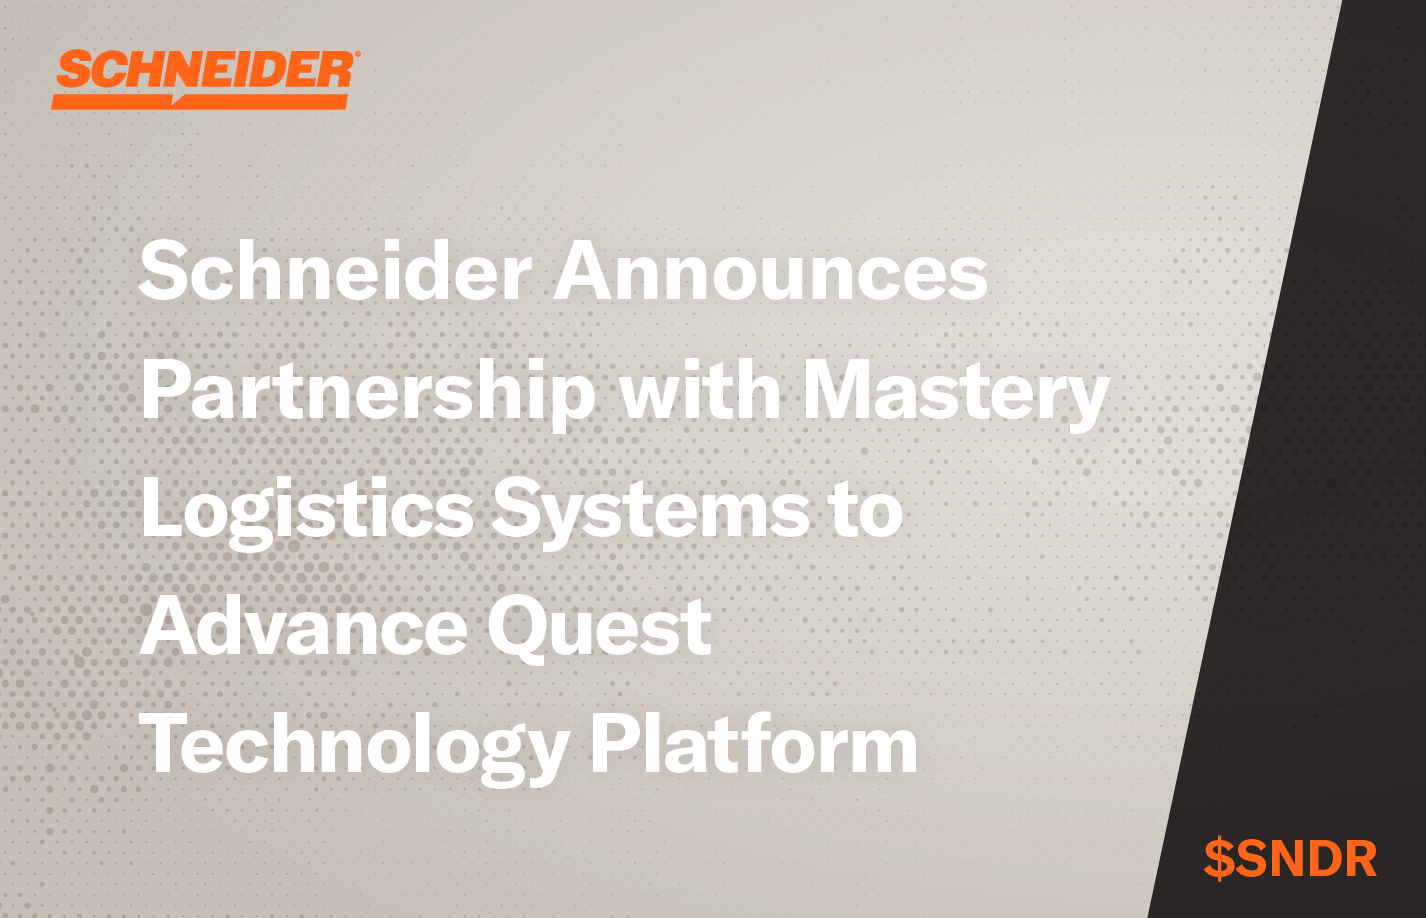 Schneider announces partnership with Mastery Logistics systems to advance quest technology platform